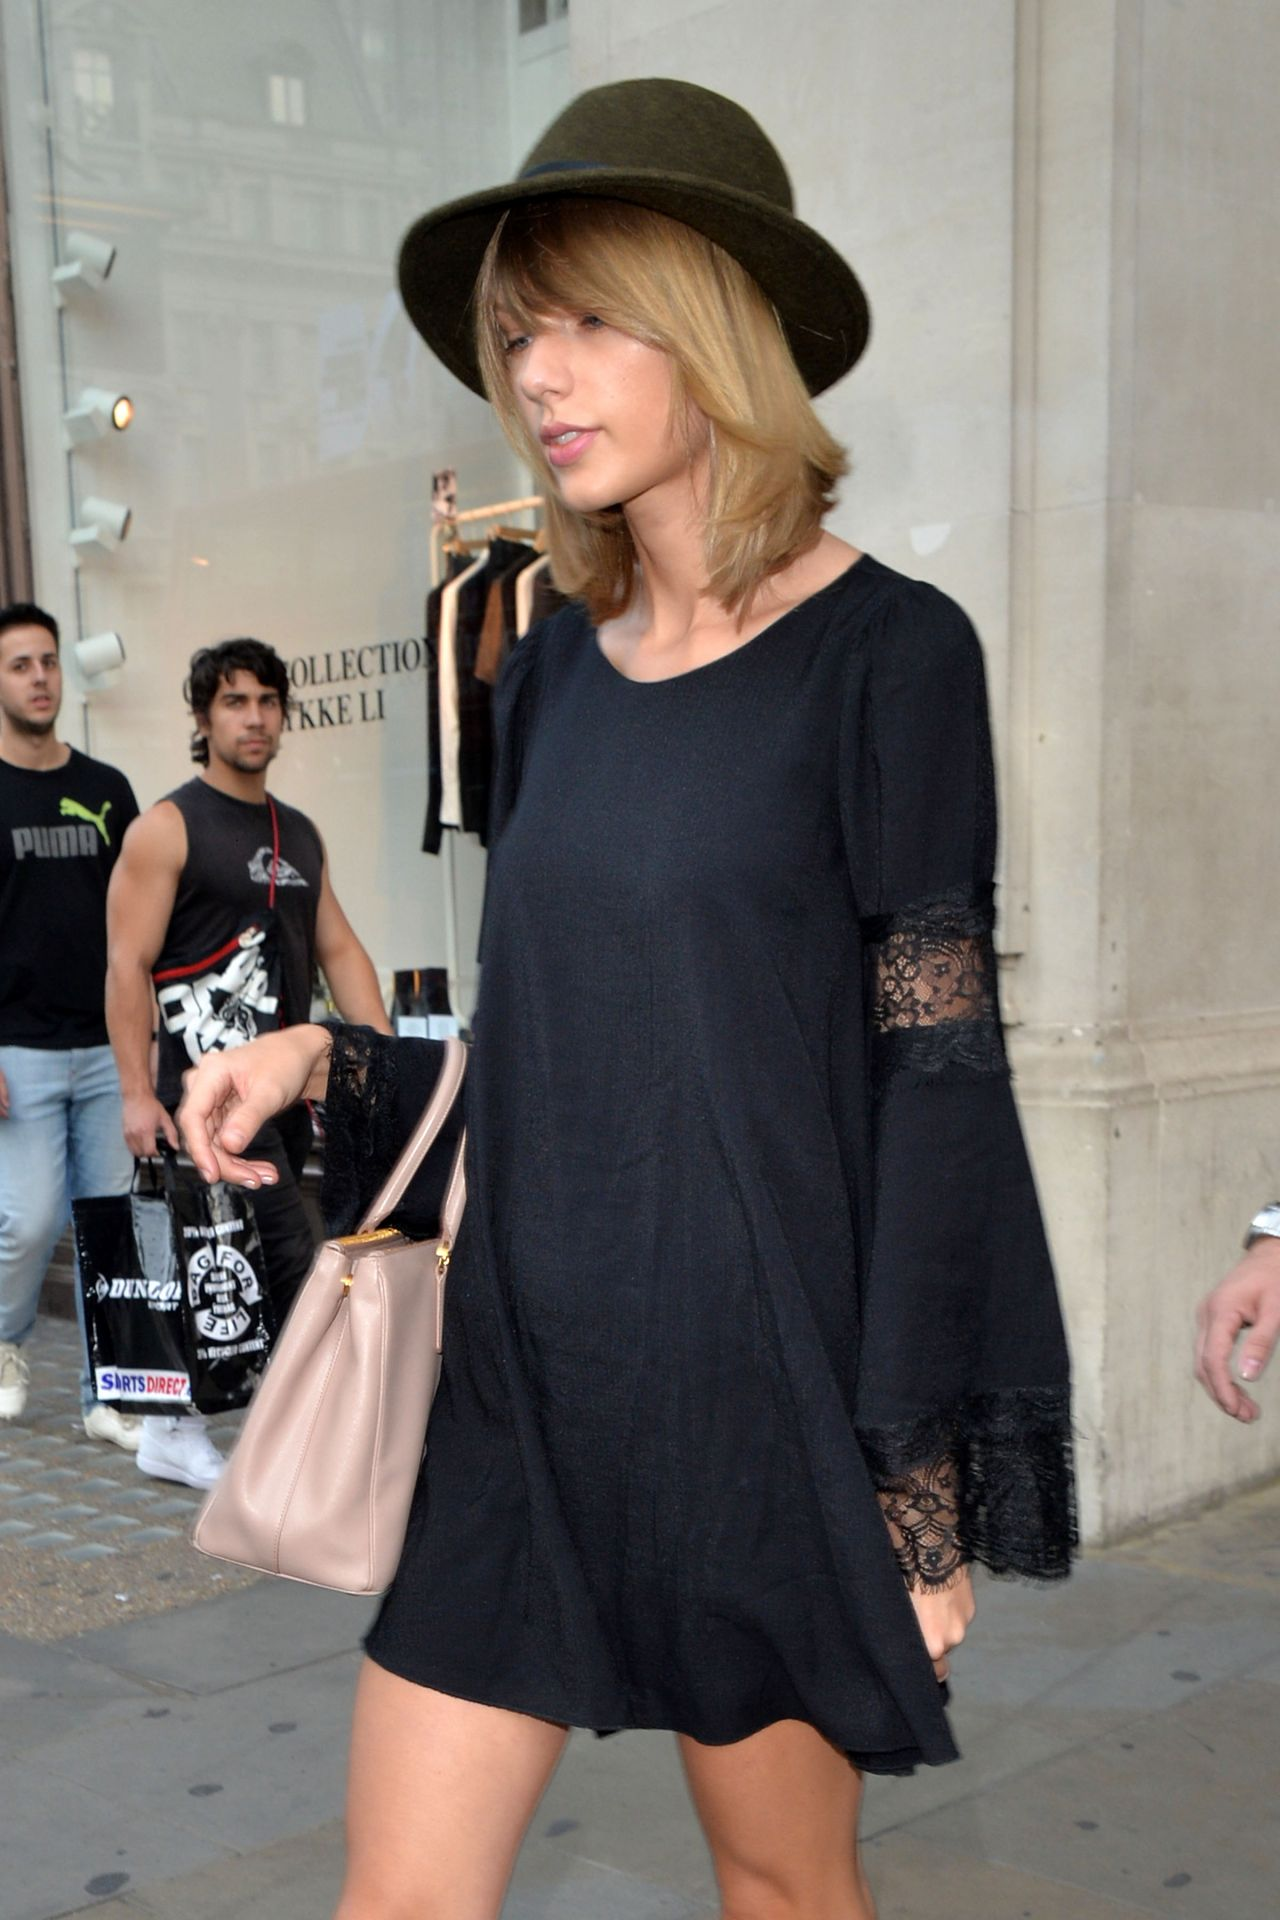 Taylor Swift Out in London - September 2014